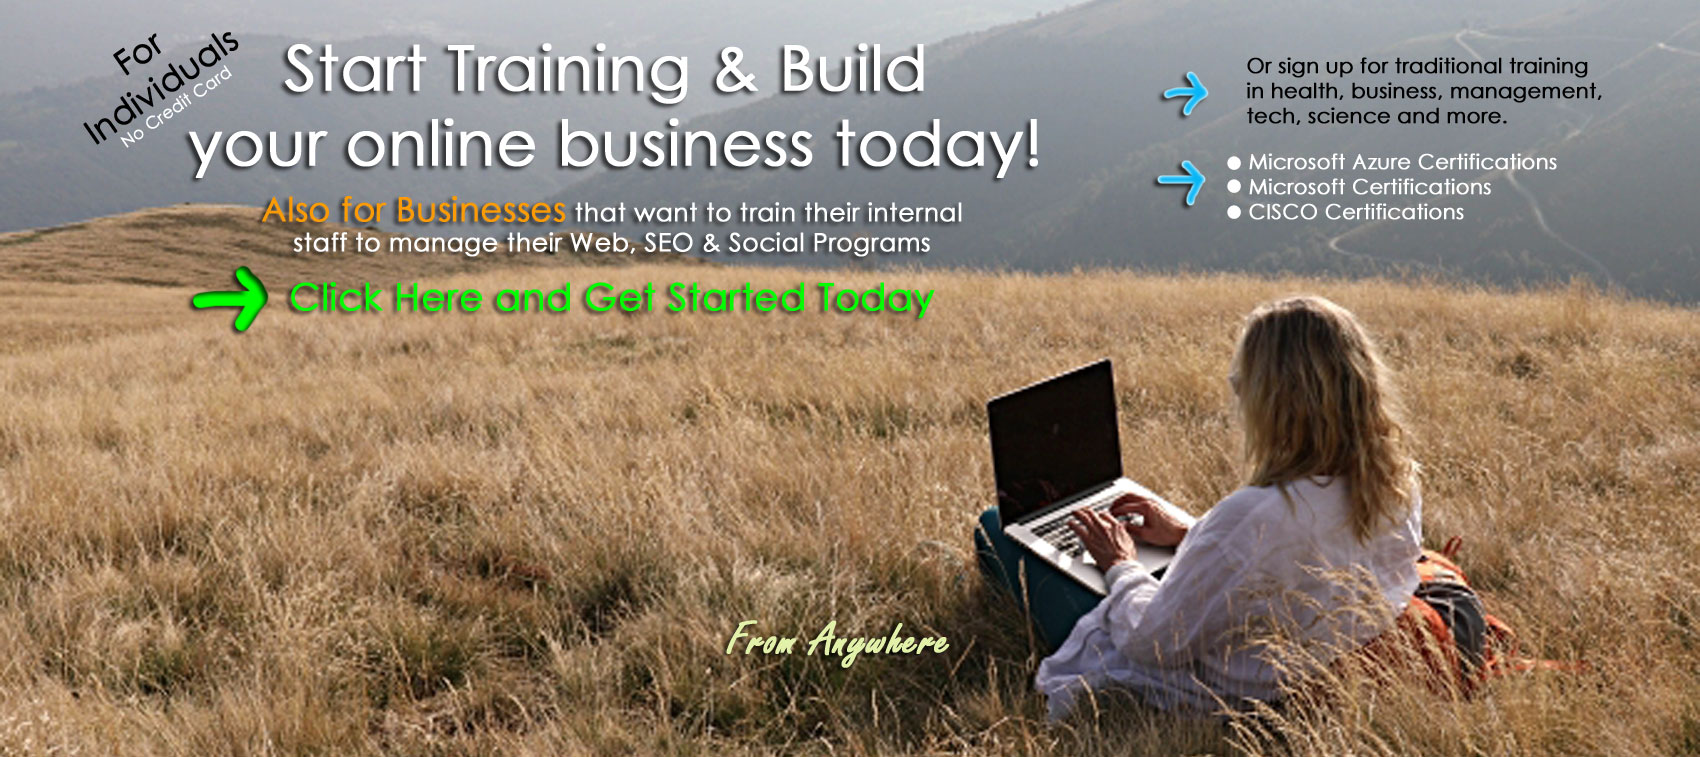 online business and training home page